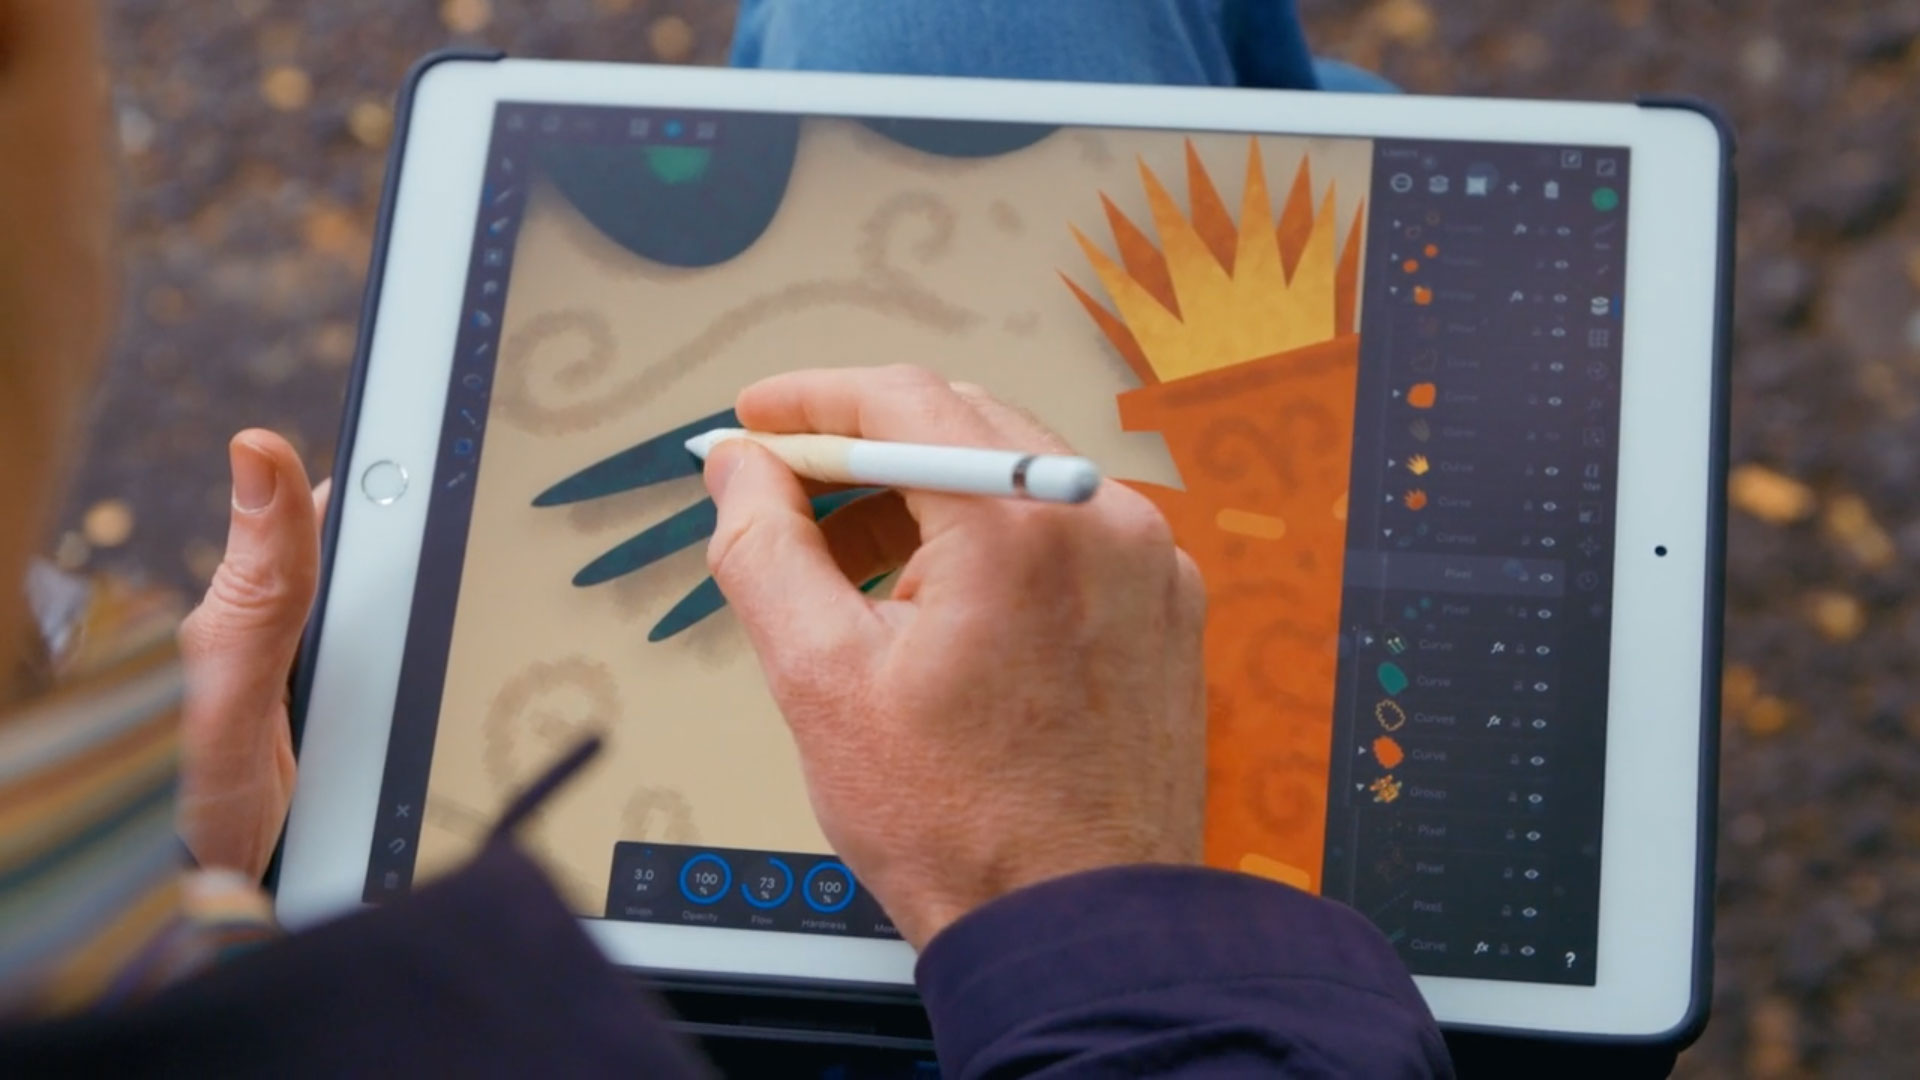 Watch Affinity Designer for iPad in action